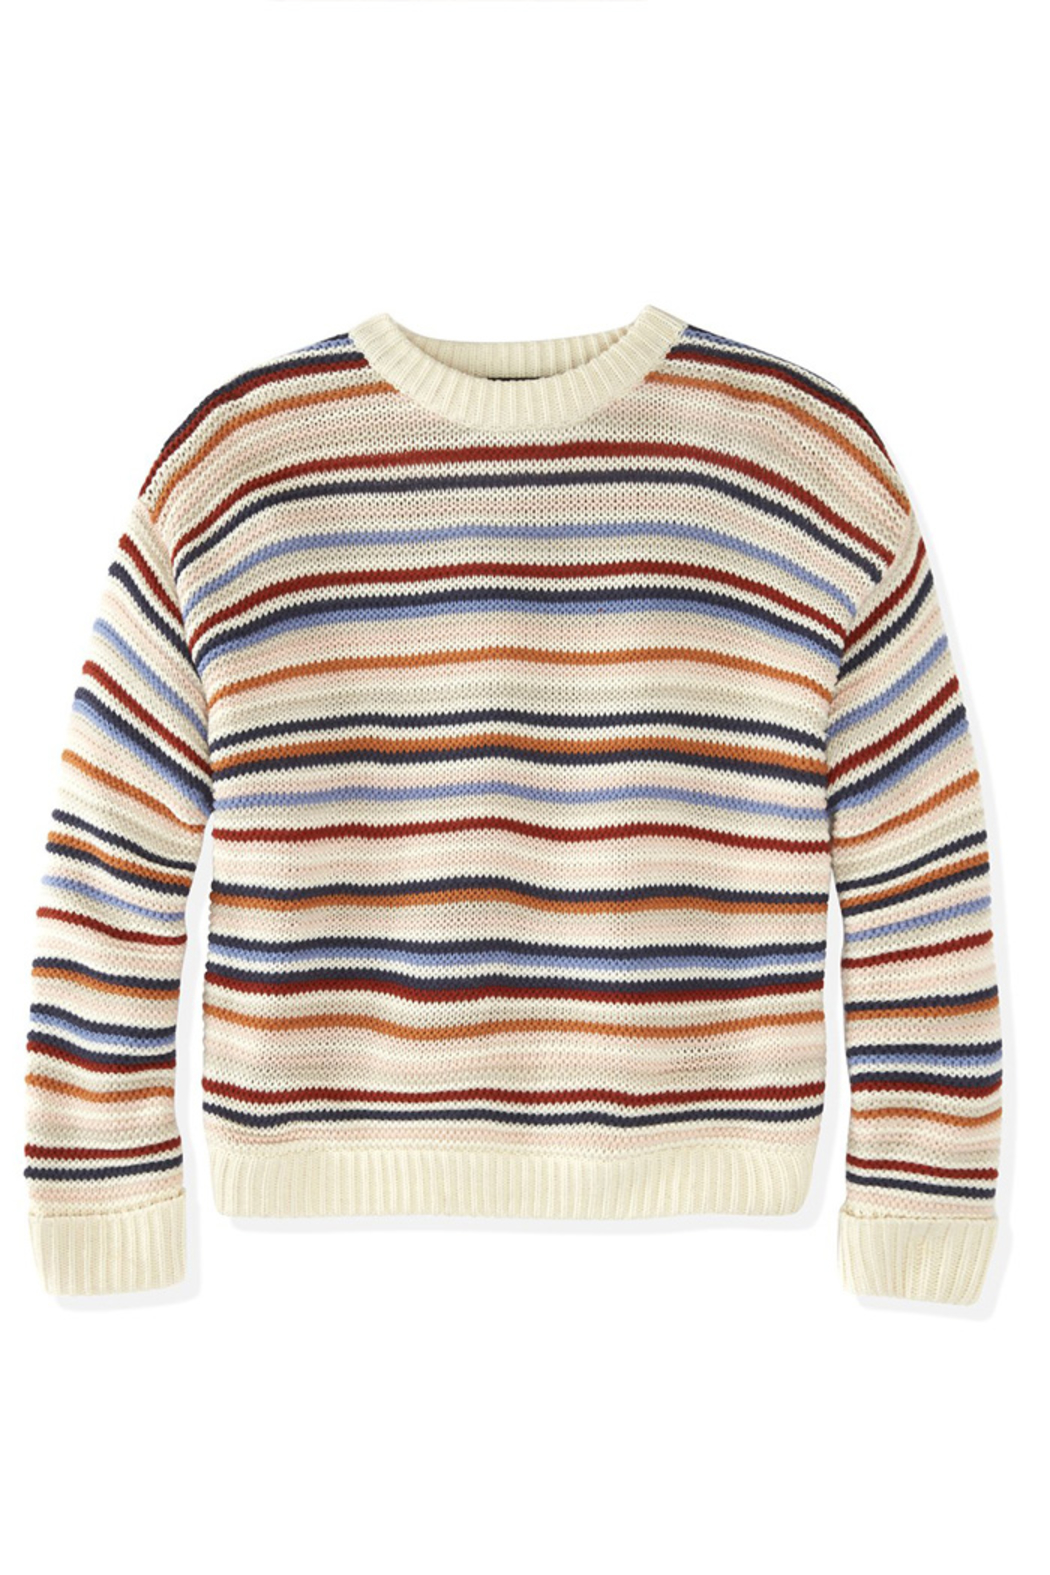 525 America STRIPED CREWNECK SWEATER - Back Cropped Image